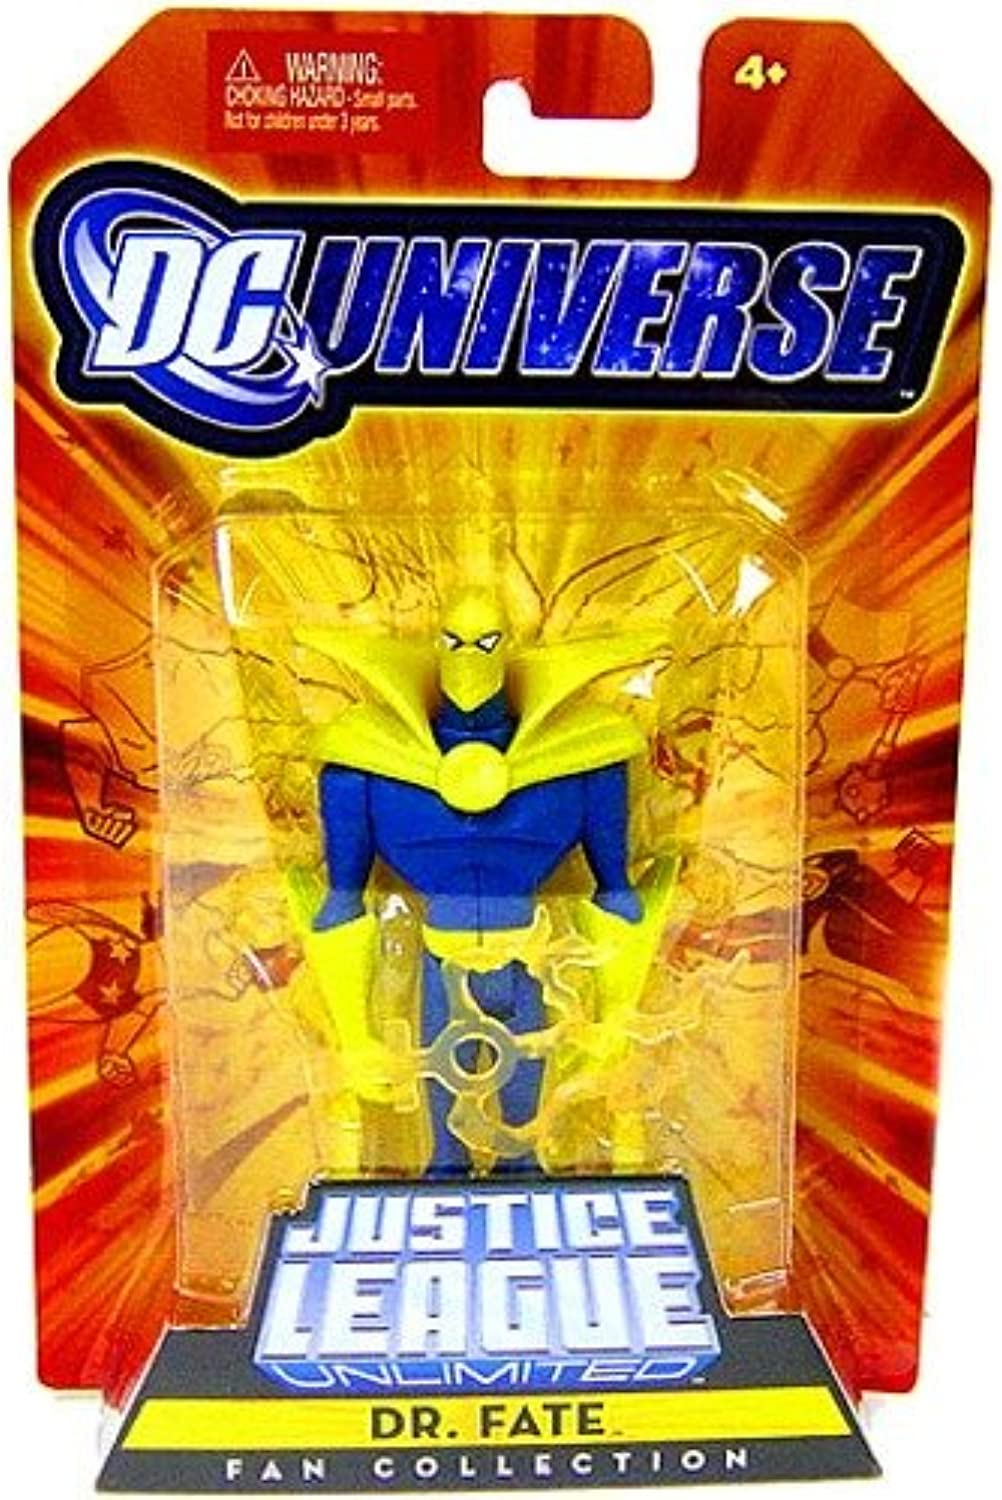 JLA - DC UNIVERSE - Super Heroes - Justice League Unlimited - Fan Collection - DR. FATE - 4  inch scale   ca. 11cm - OVP